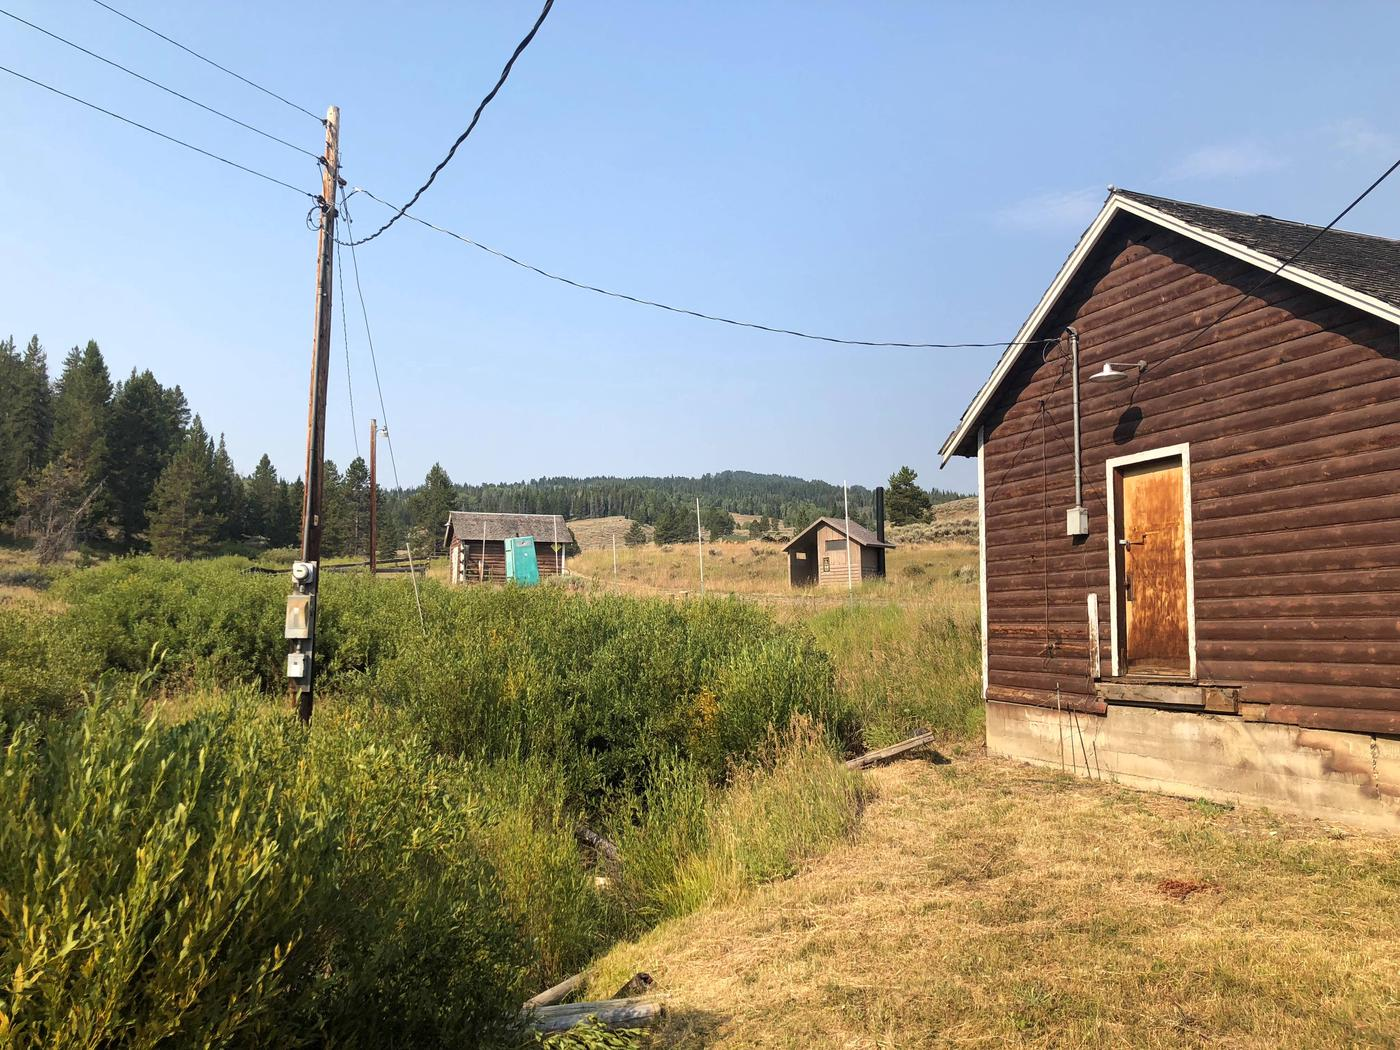 West viewBarn, horse corrals, and vaulted toilet